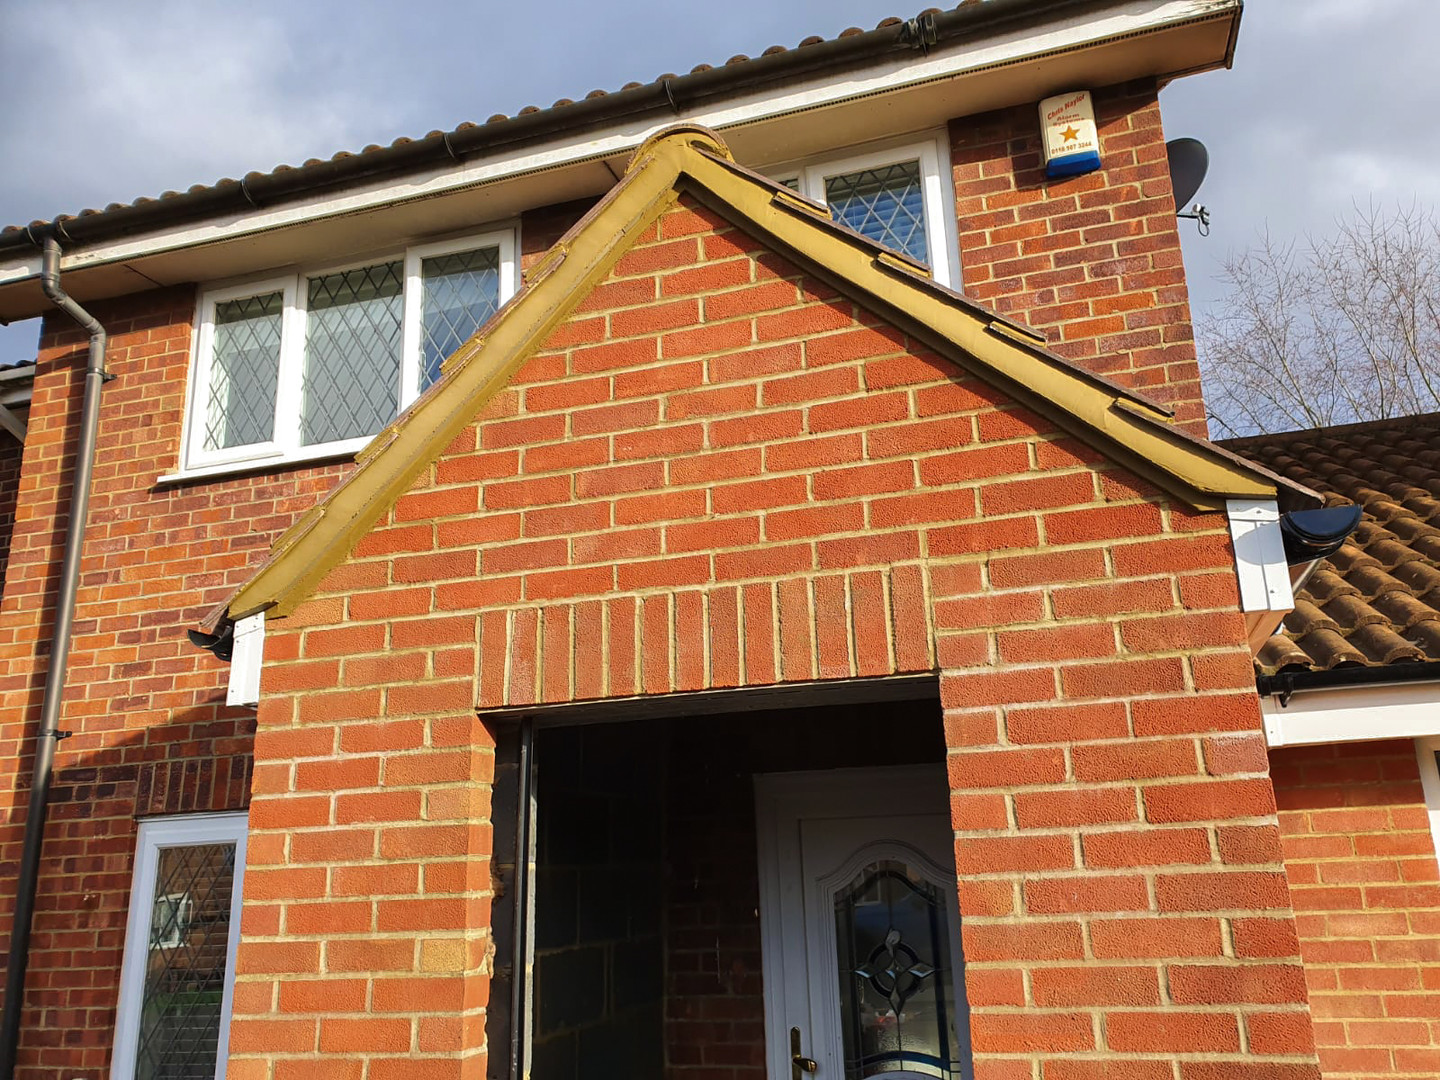 Completed brickwork with roofing tiles and drainiage